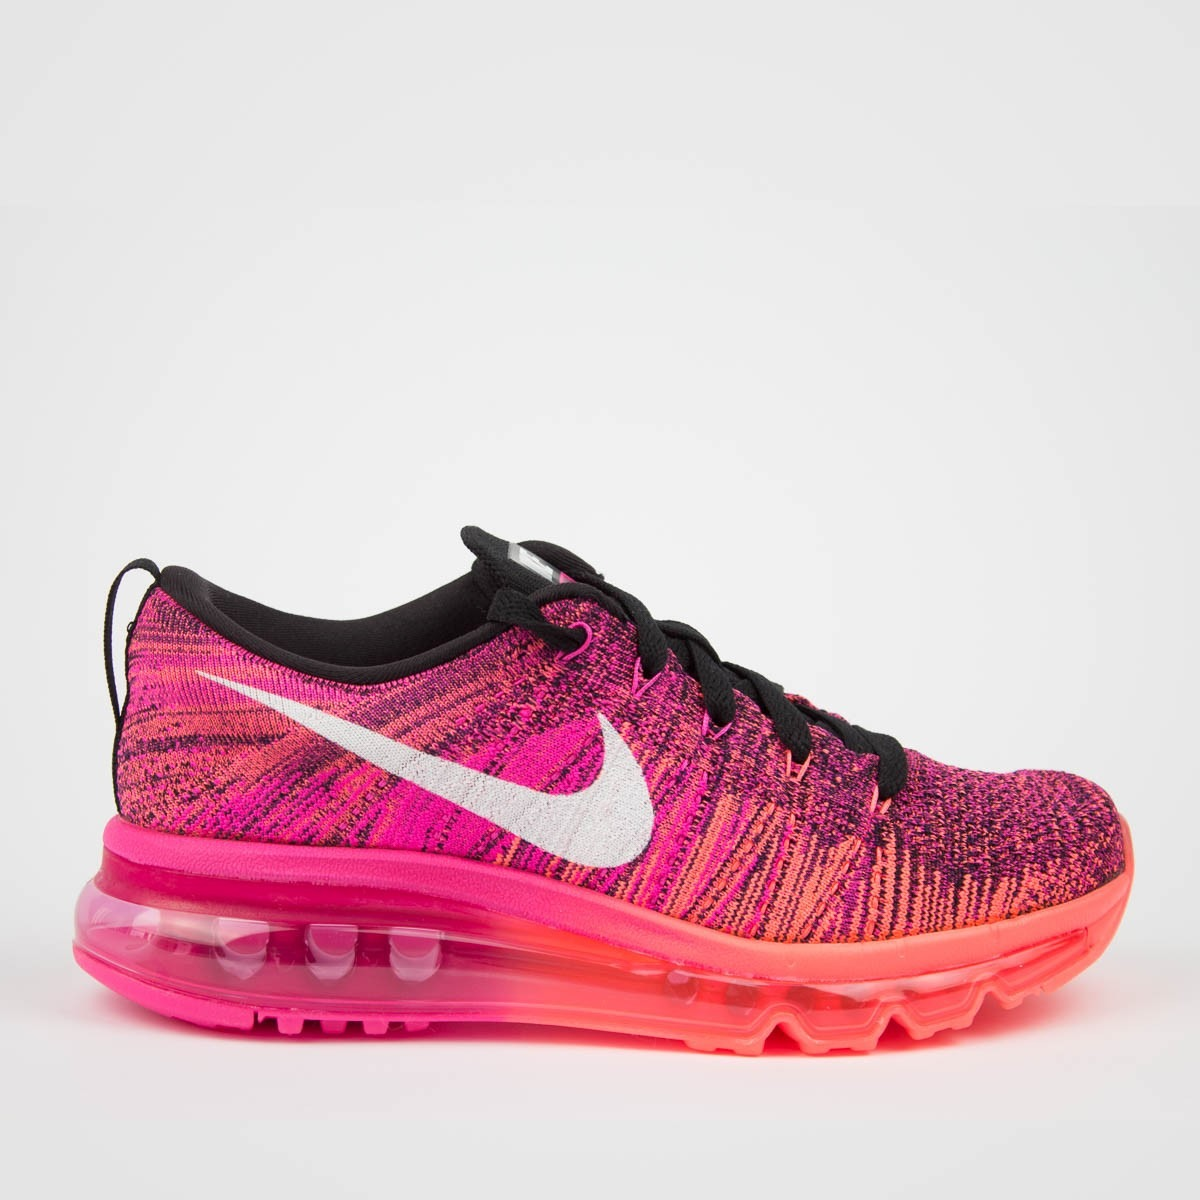 huge selection of 7f3c7 5ffc1 ... tenis nike air max mercadolivre .